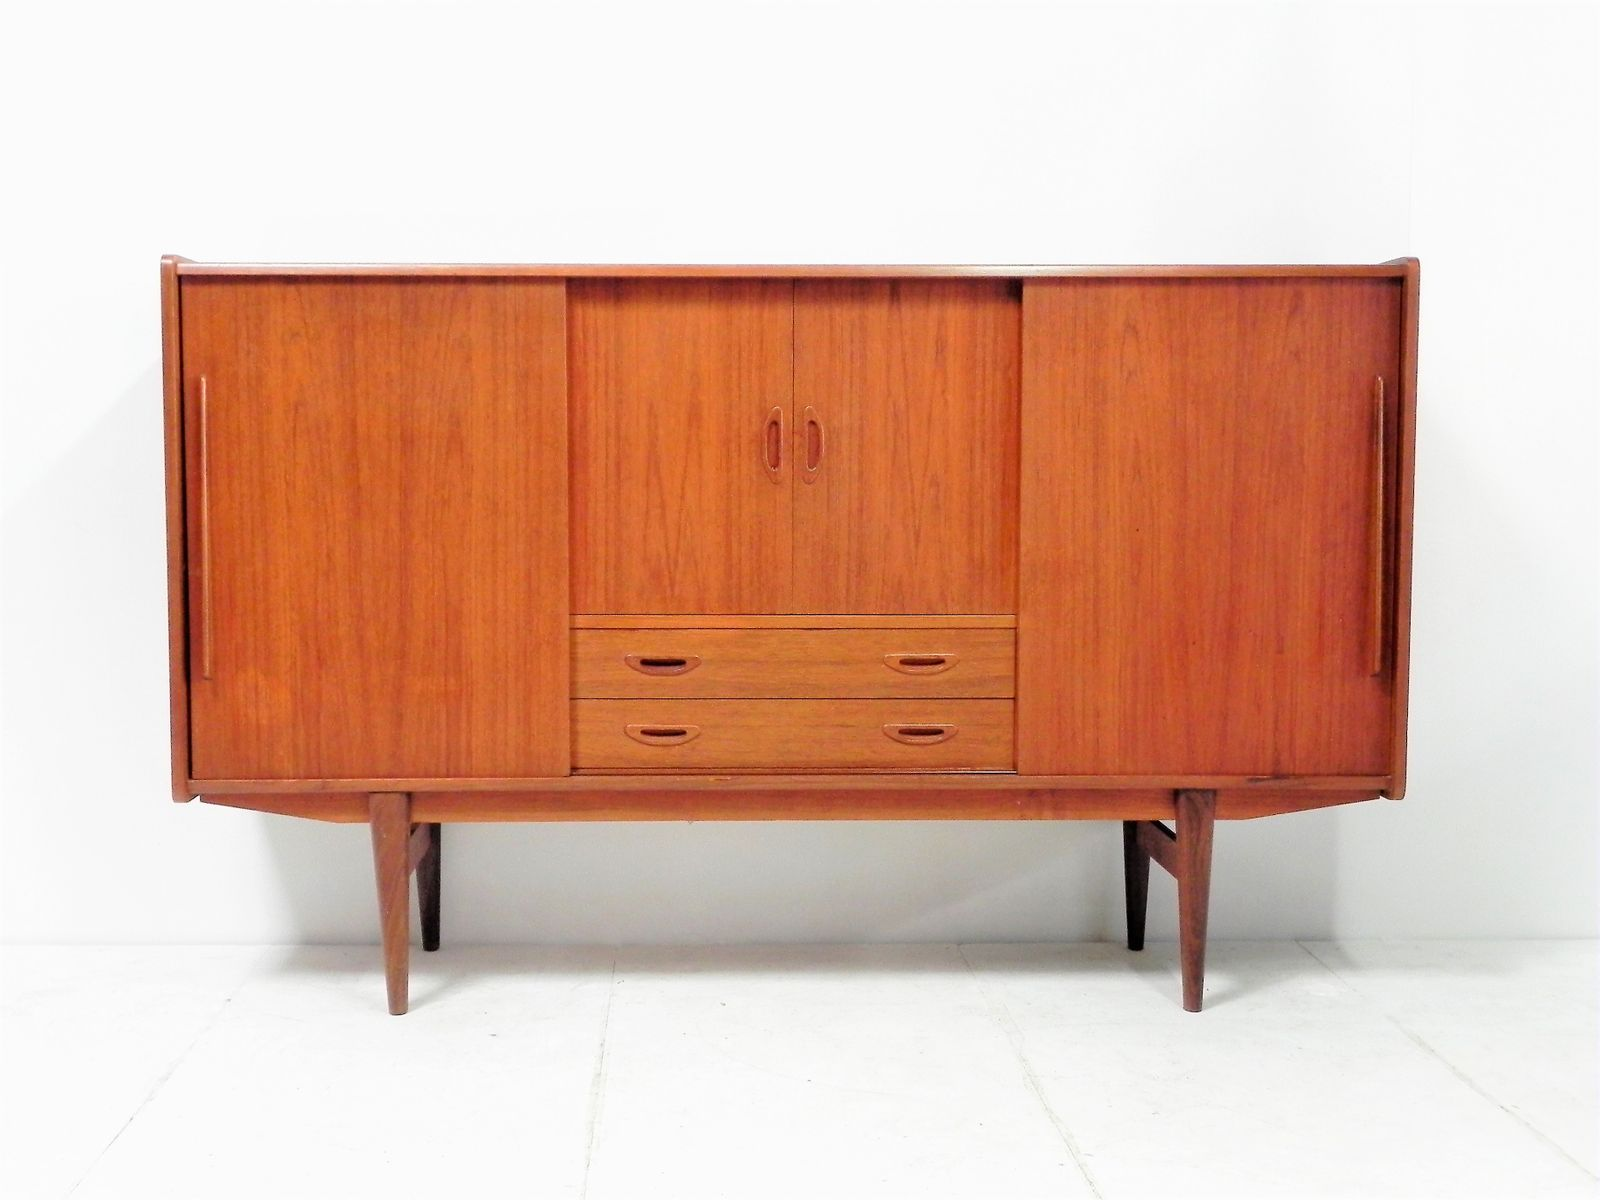 skandinavisches mid century teak und palisander sideboard. Black Bedroom Furniture Sets. Home Design Ideas